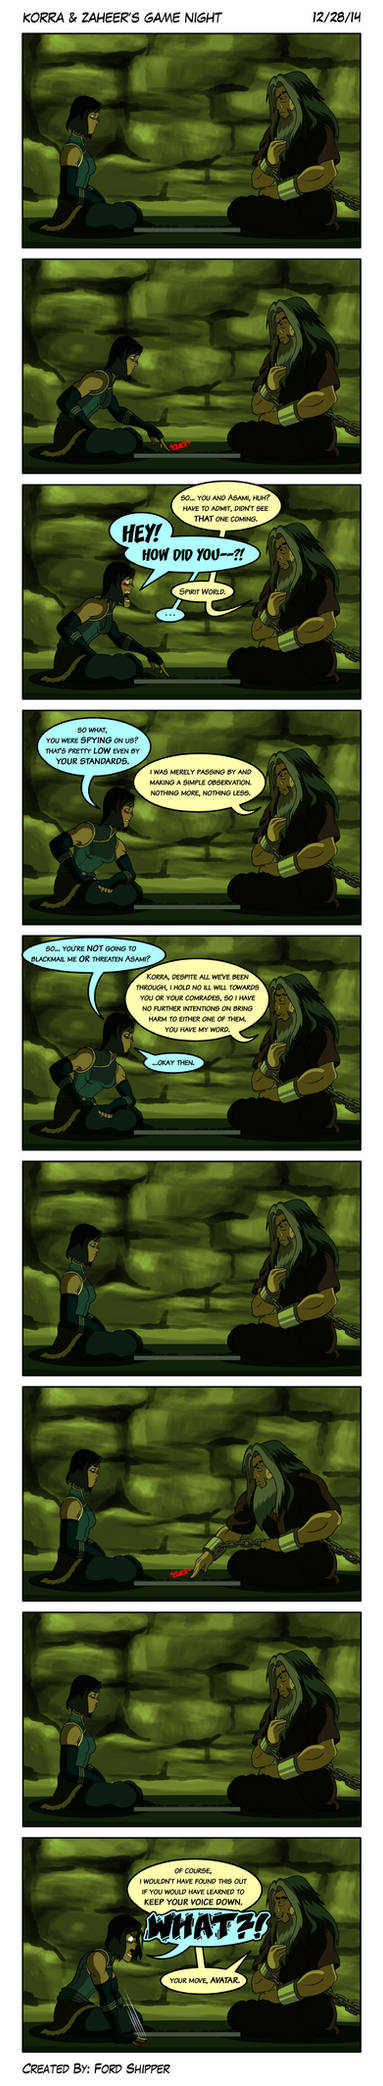 Korra and Zaheer's Game Night by Mystic-Forces